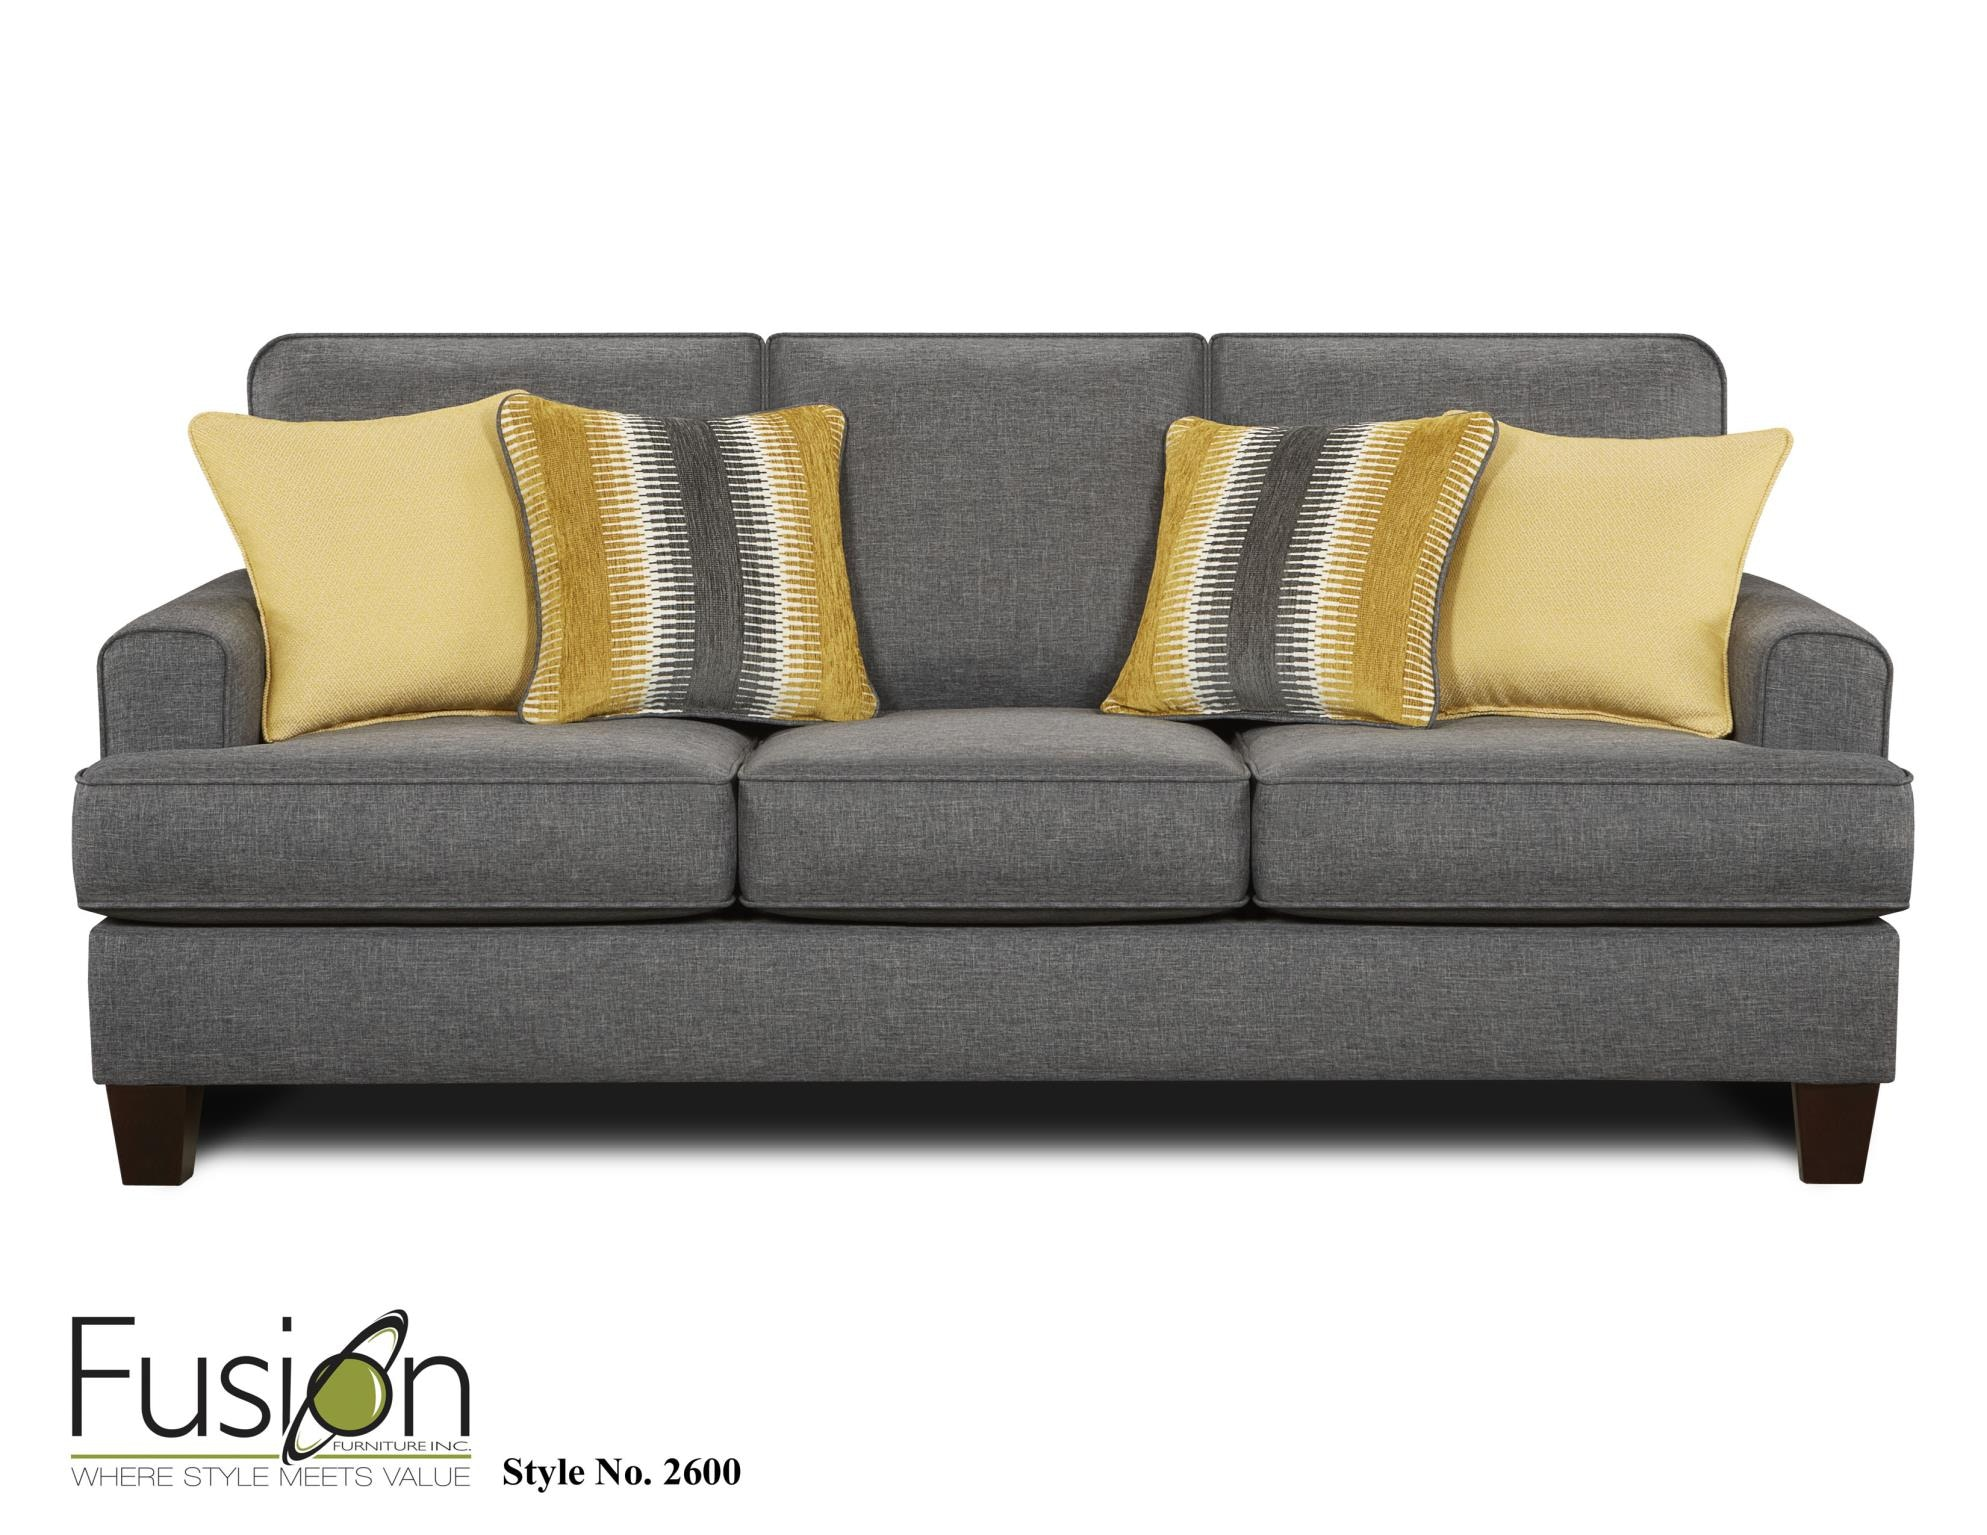 Fusion Sofa Sleeper 2604Maxwell Gray At Gustafsonu0027s Furniture And Mattress